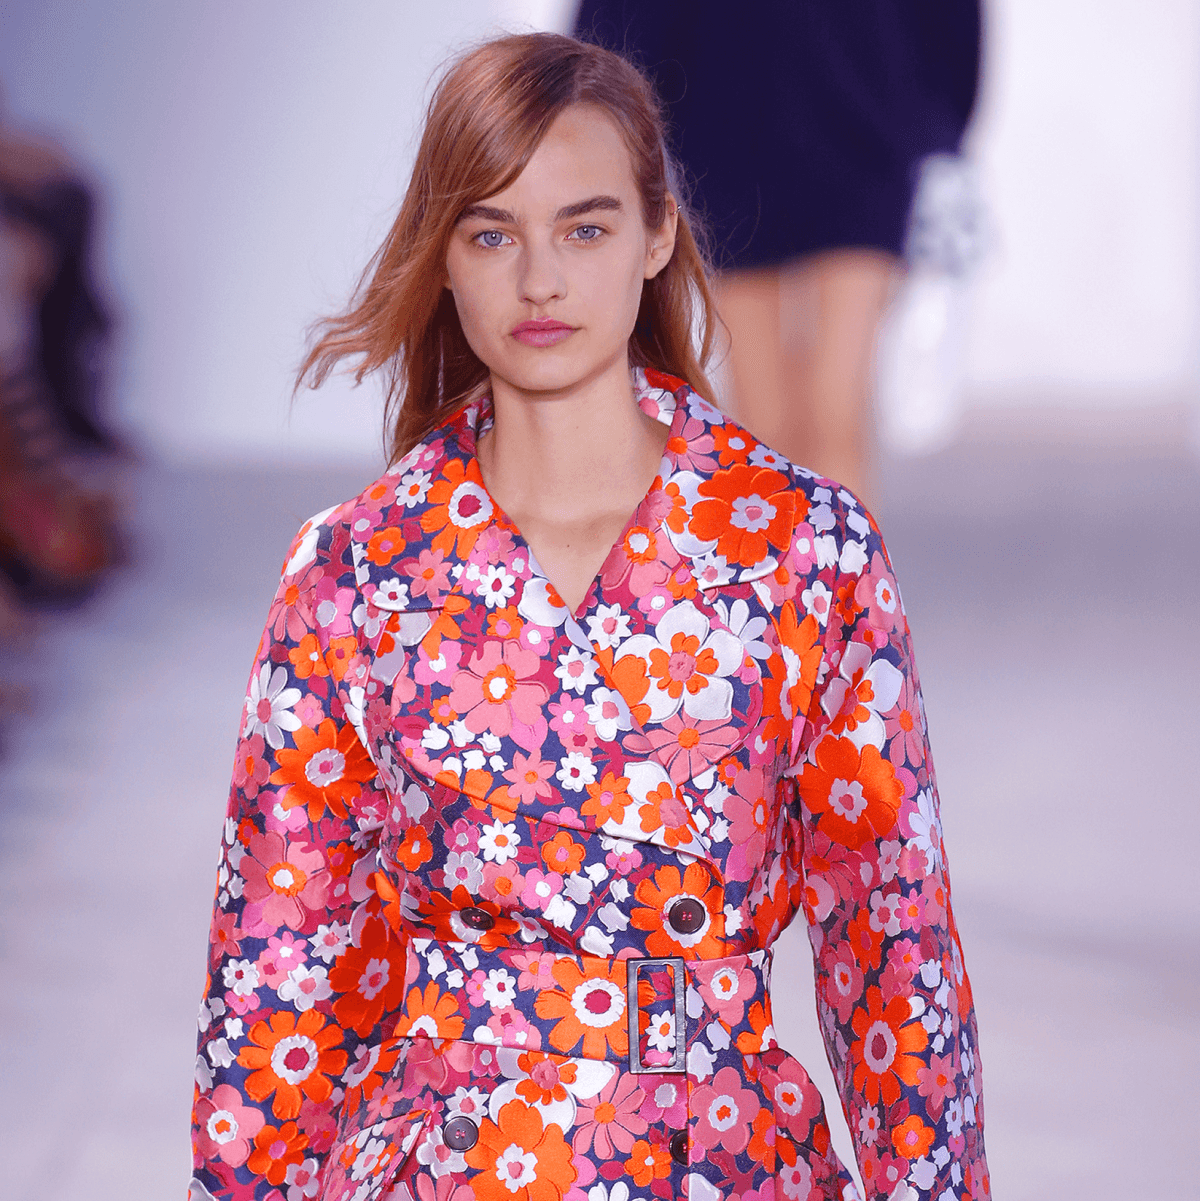 Michael Kors spring 2017 collection